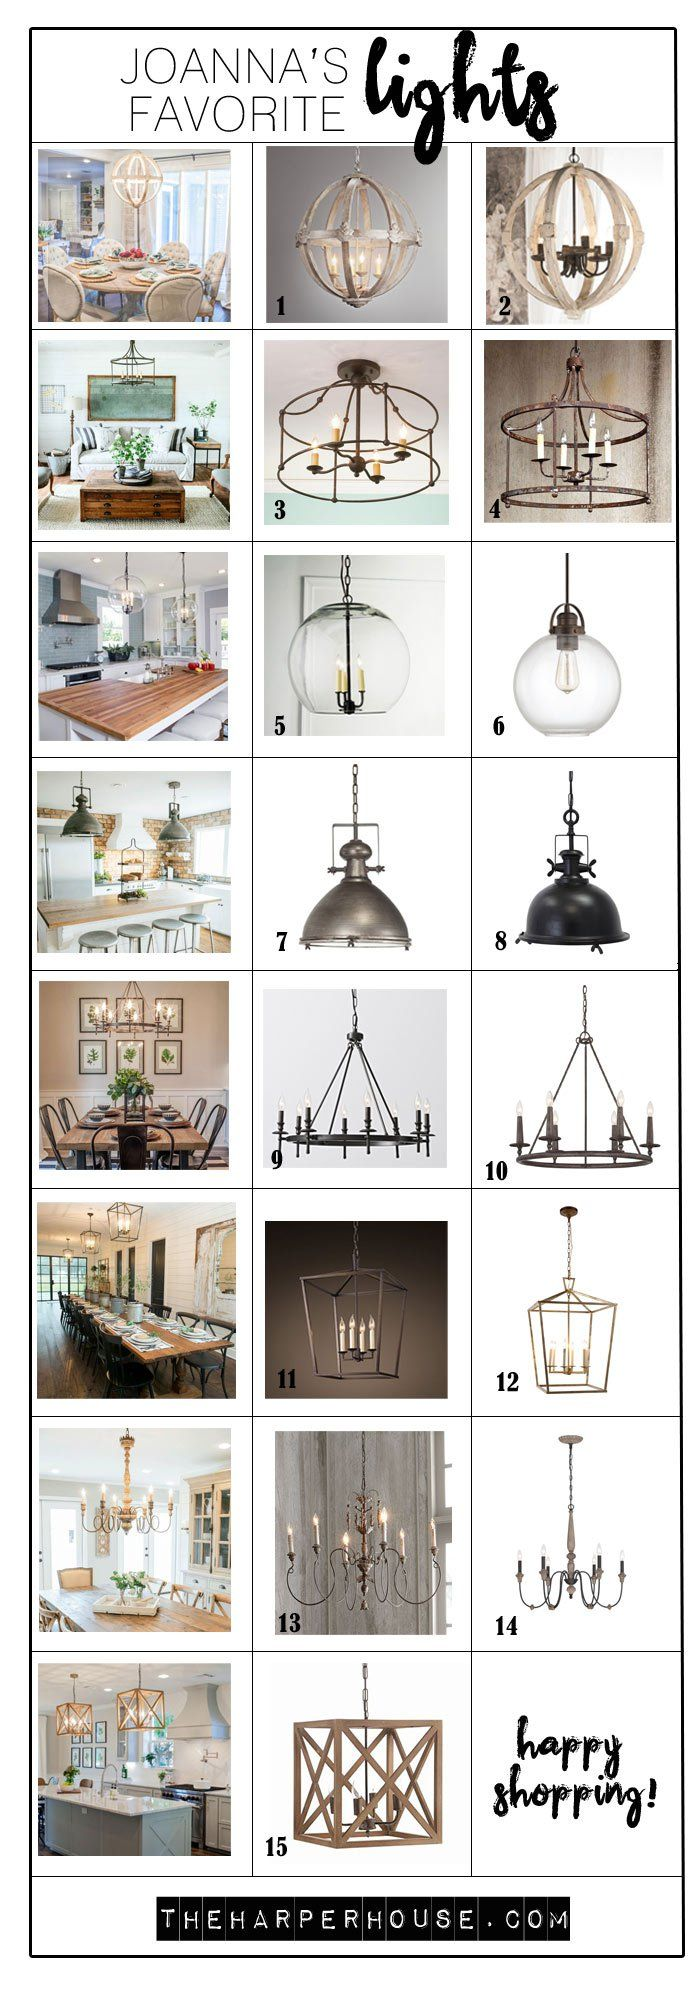 Fixer upper kitchen lighting - Check Out These Light Fixtures Used By Joanna Gaines On Fixer Upper Shopping Sources